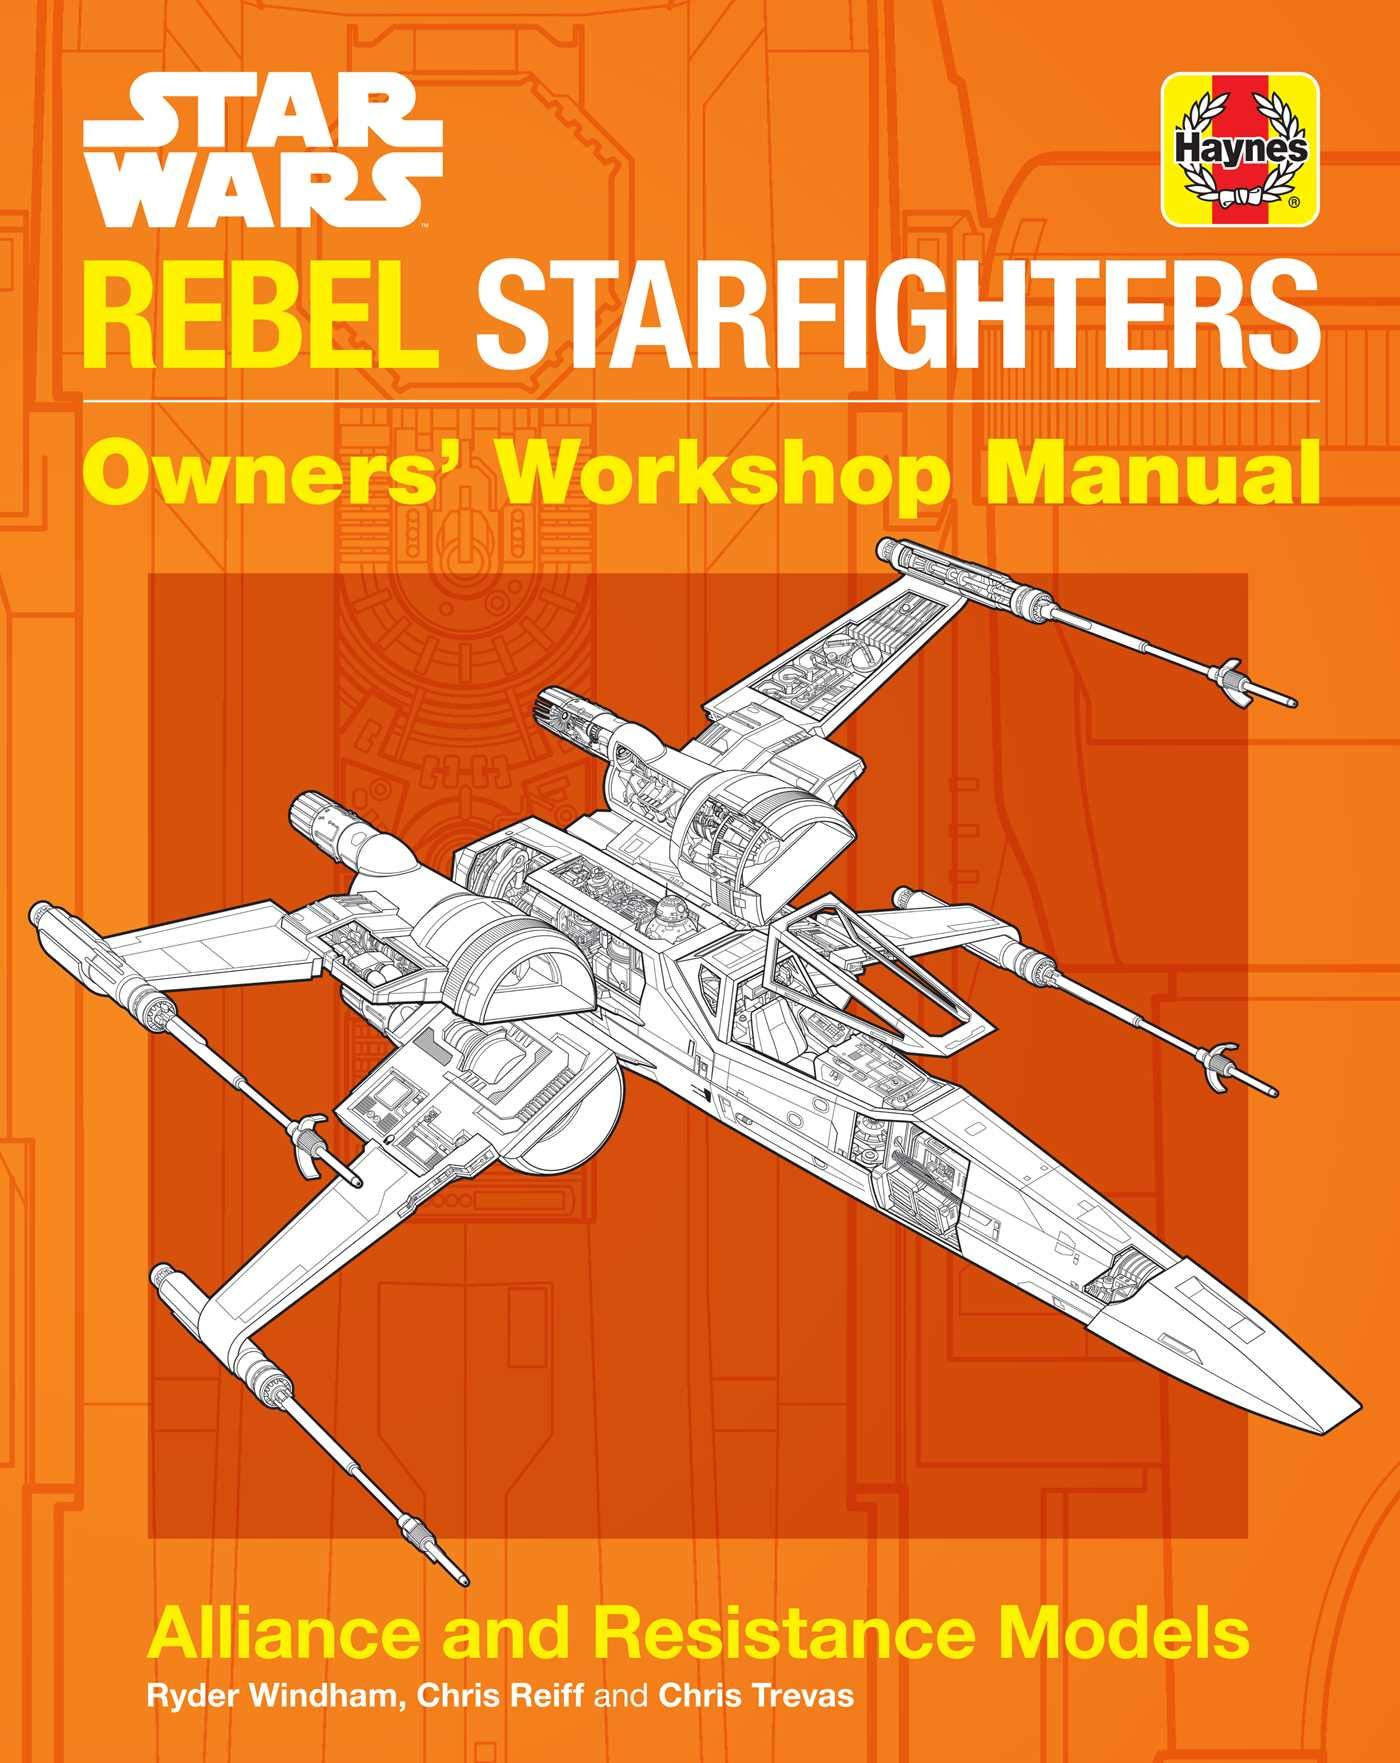 Rebel Starfighters Owners' Workshop Manual (12.11.2019)